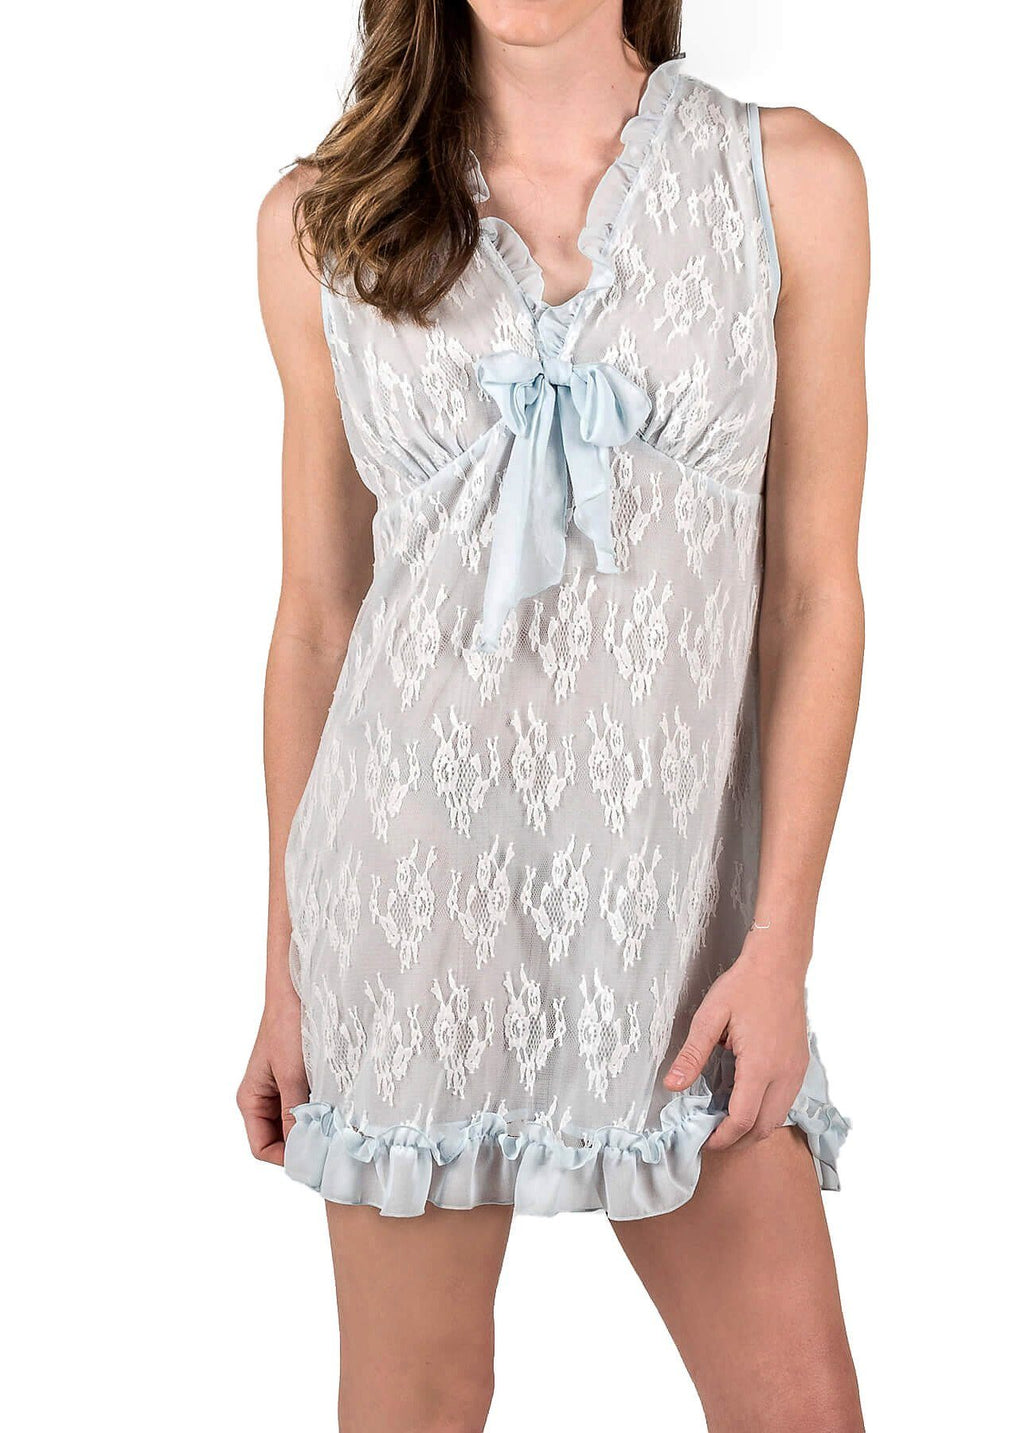 Chantilly Chemise #28834 in Cloud Blue